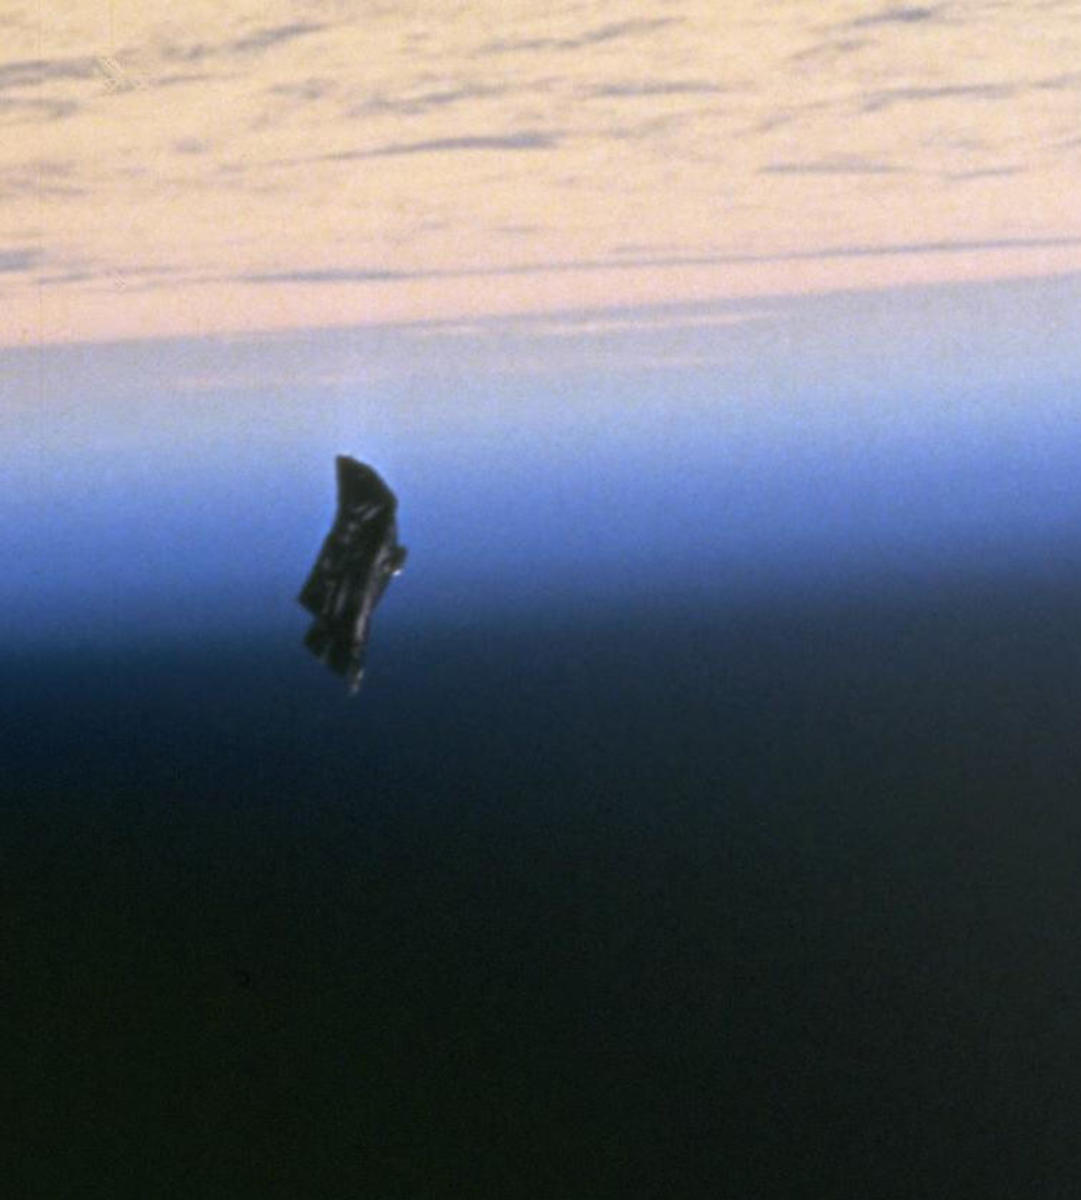 Exploring the Mystery of the Black Knight Satellite